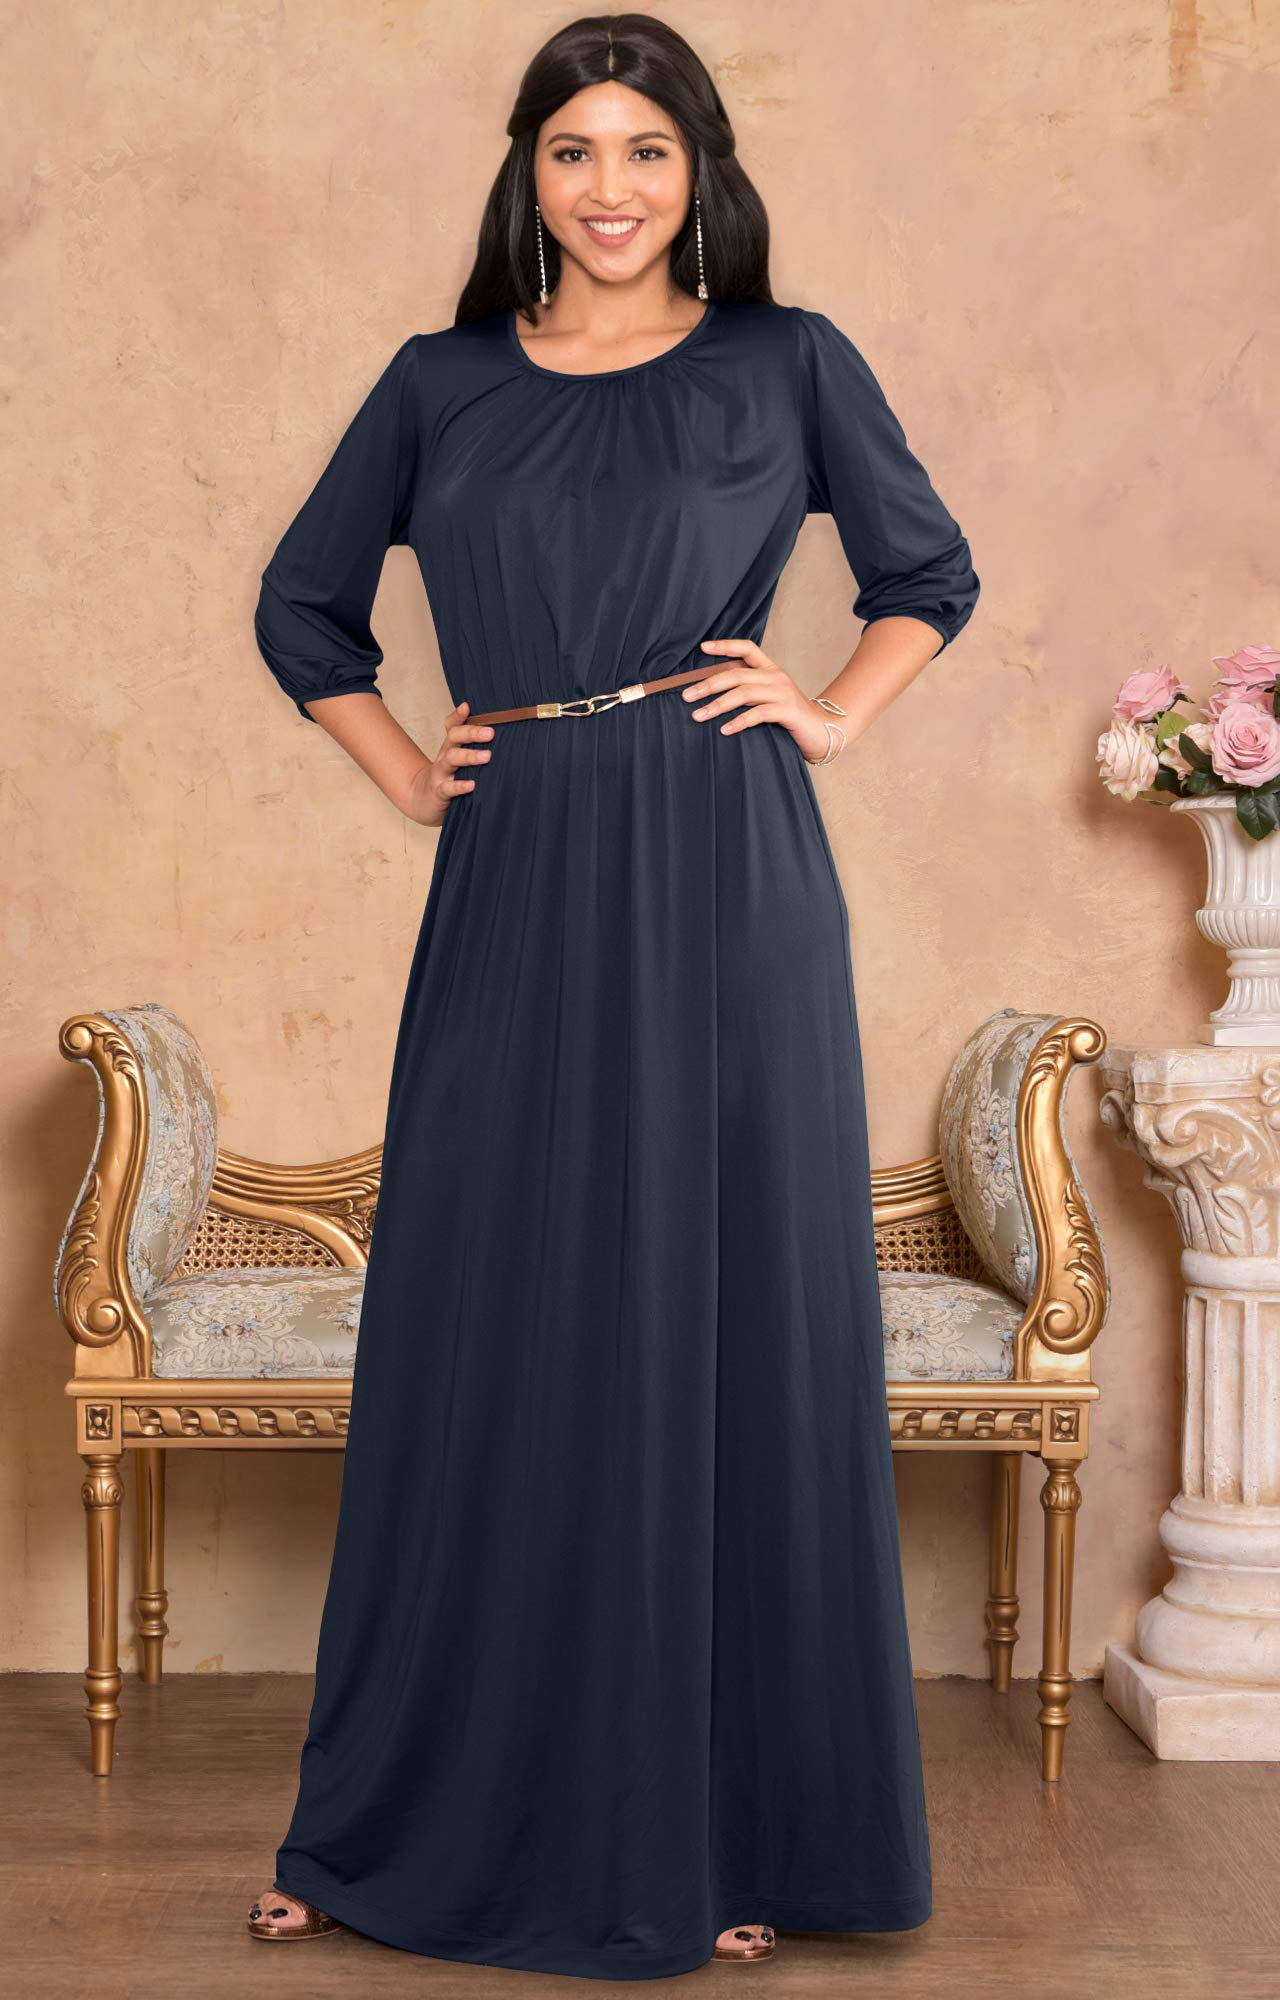 d91ee05d4bce KOH KOH Plus Size Women Long 3 4 Sleeve Sleeves Vintage Autumn Fall Winter  Flowy Formal Evening Work Office Modest Peasant Cute Abaya Gown Gowns Maxi  Dress ...